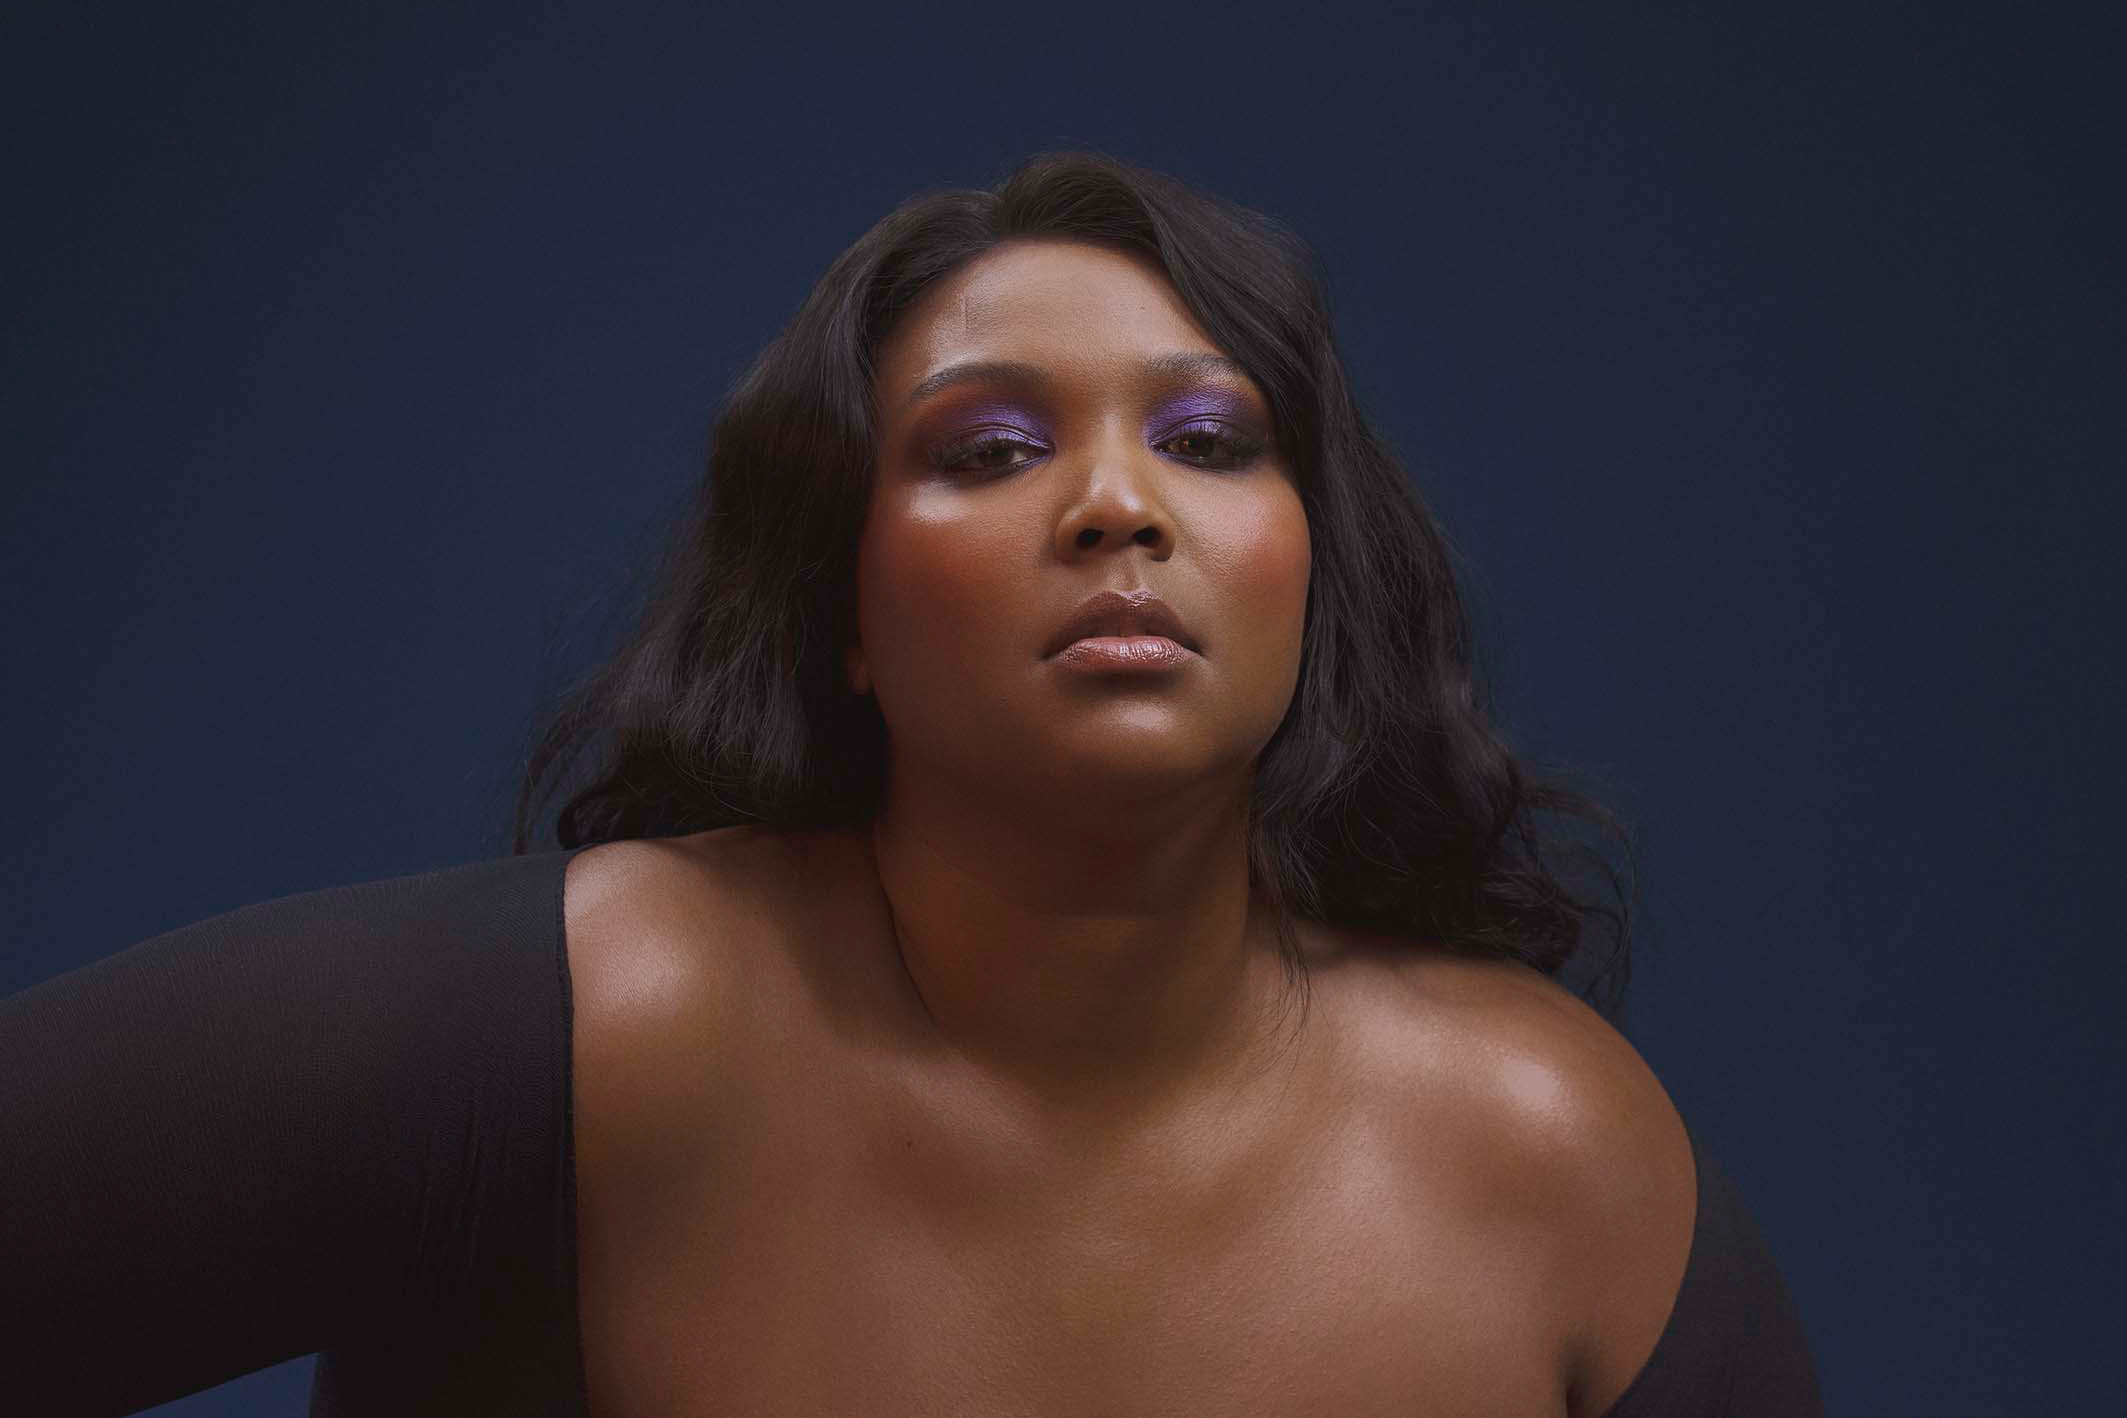 https://www.rollingstone.com/wp-content/uploads/2019/01/lizzo-song-you-need-to-know.jpg?crop=900:600&width=1440